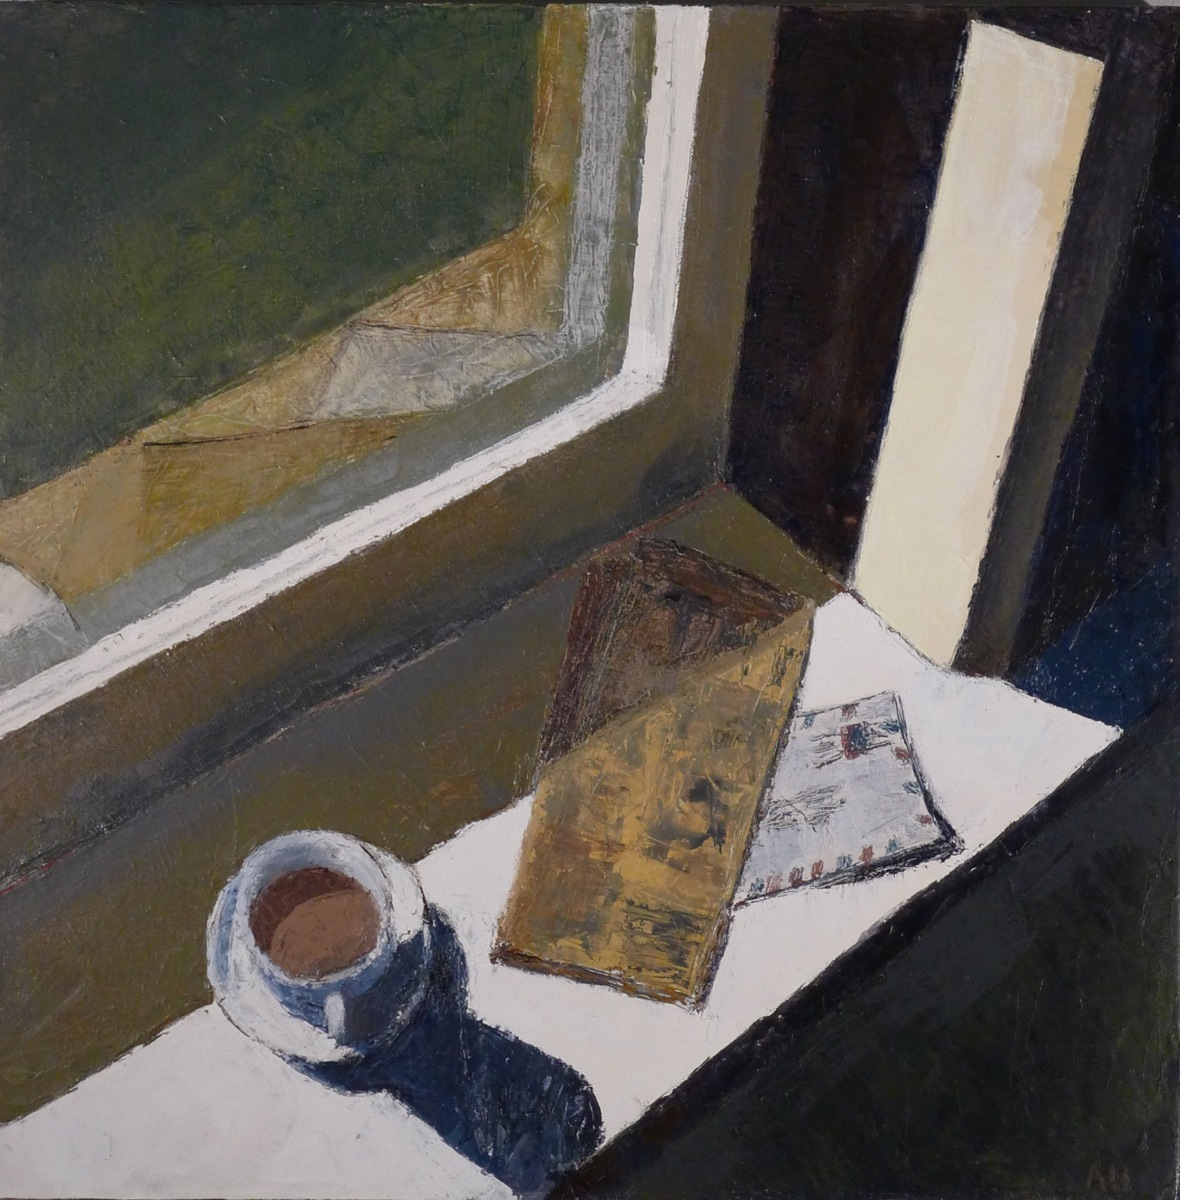 Window sill with coffee cup, newspaper and envelope, 2015 (large view)